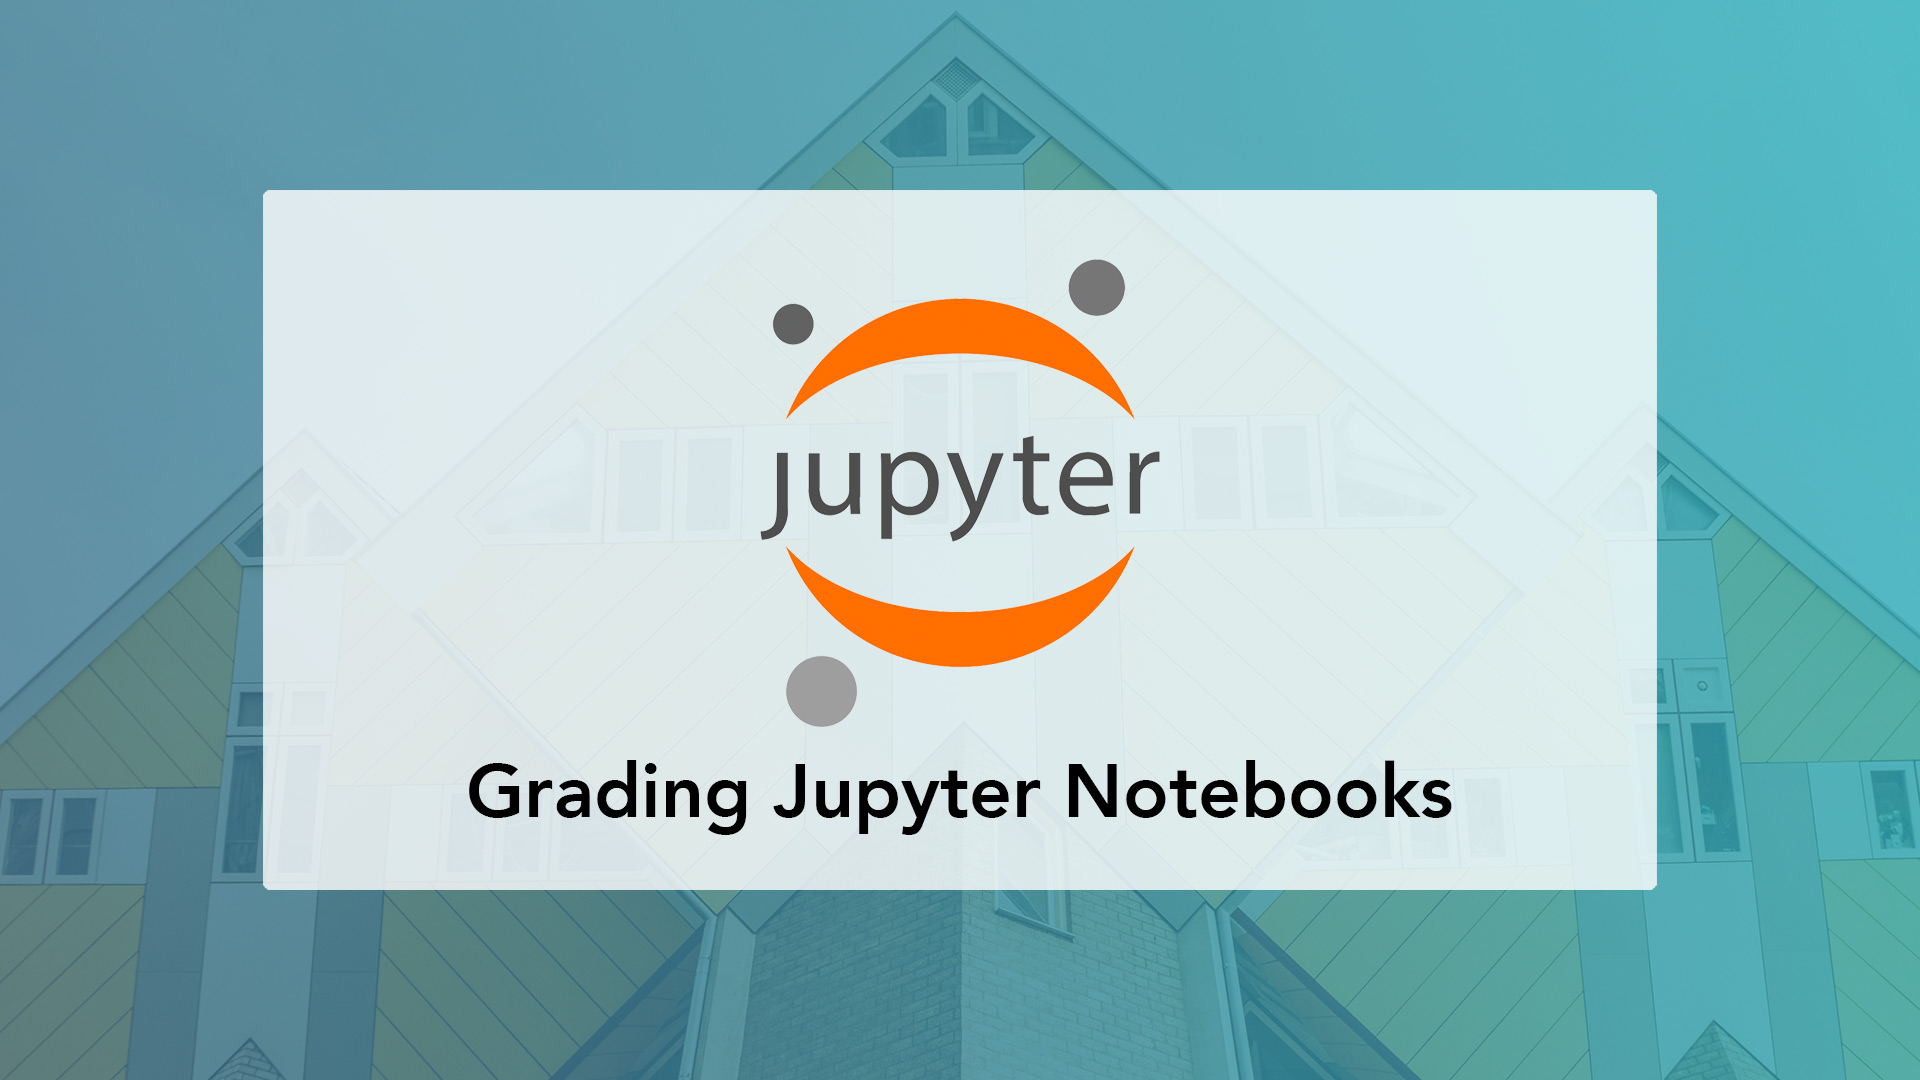 Automatically grading Jupyter (IPython) Notebooks for university courses